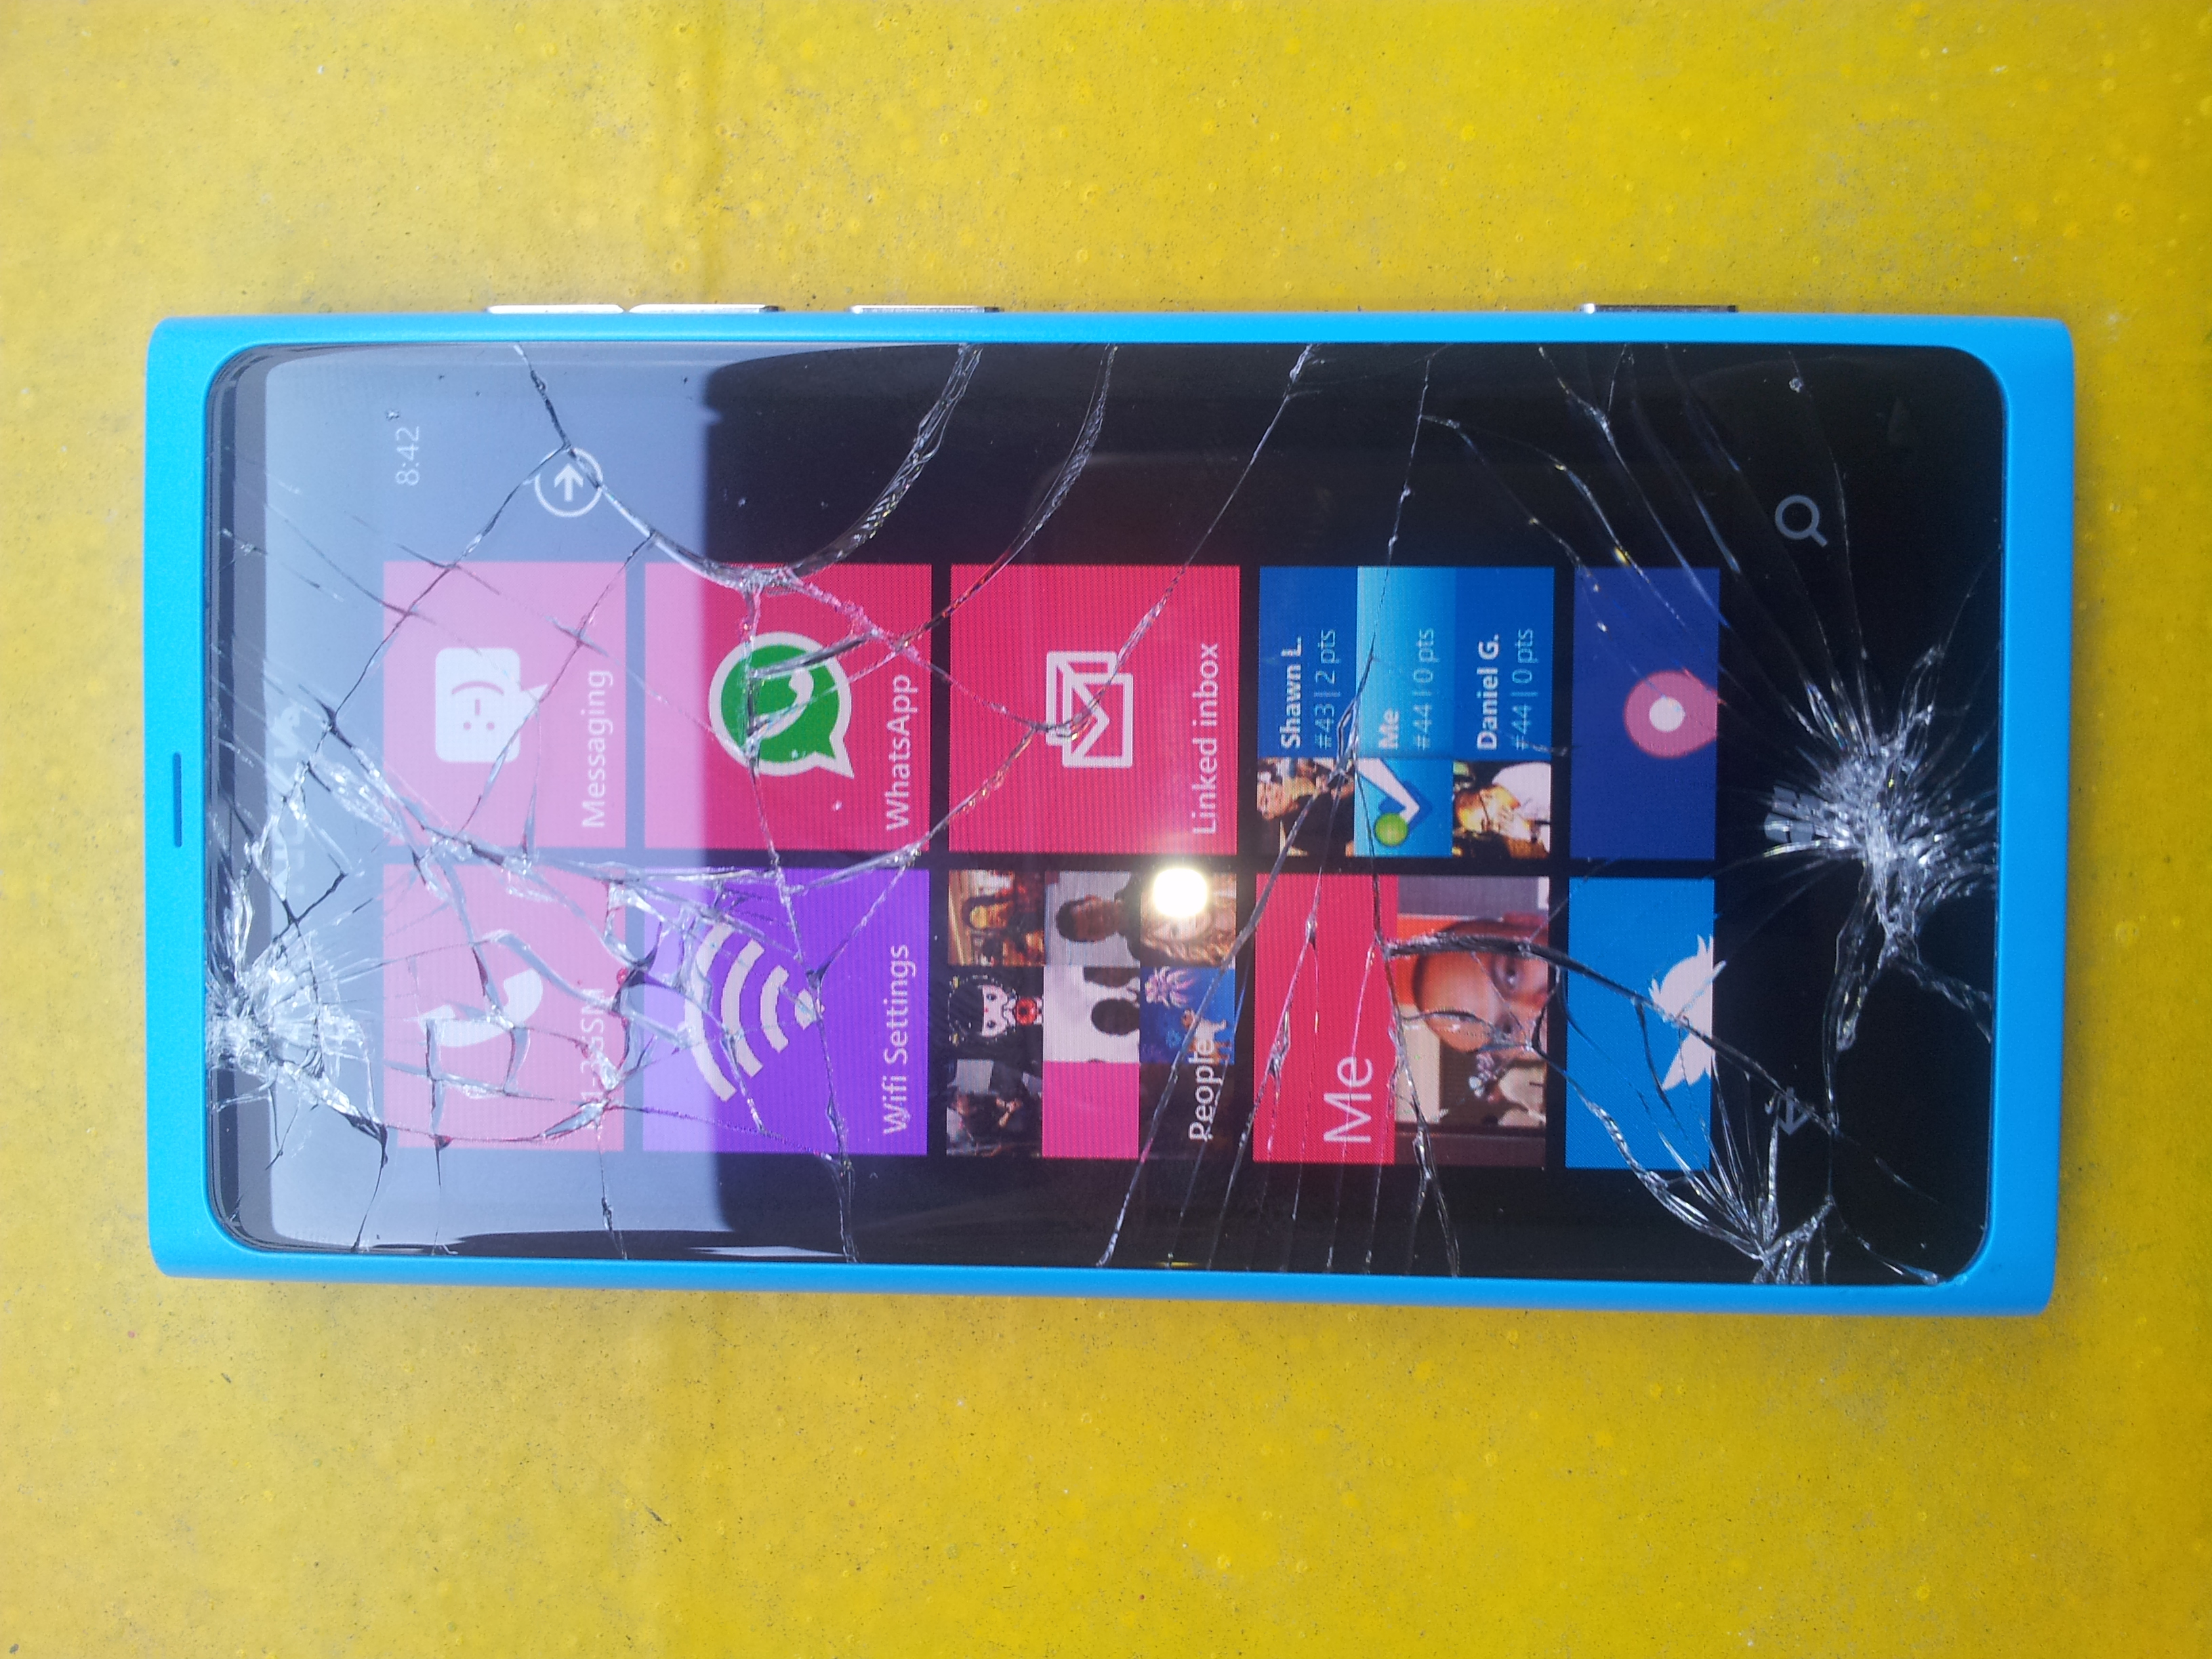 Nokia lumia 800 screen shattered 1